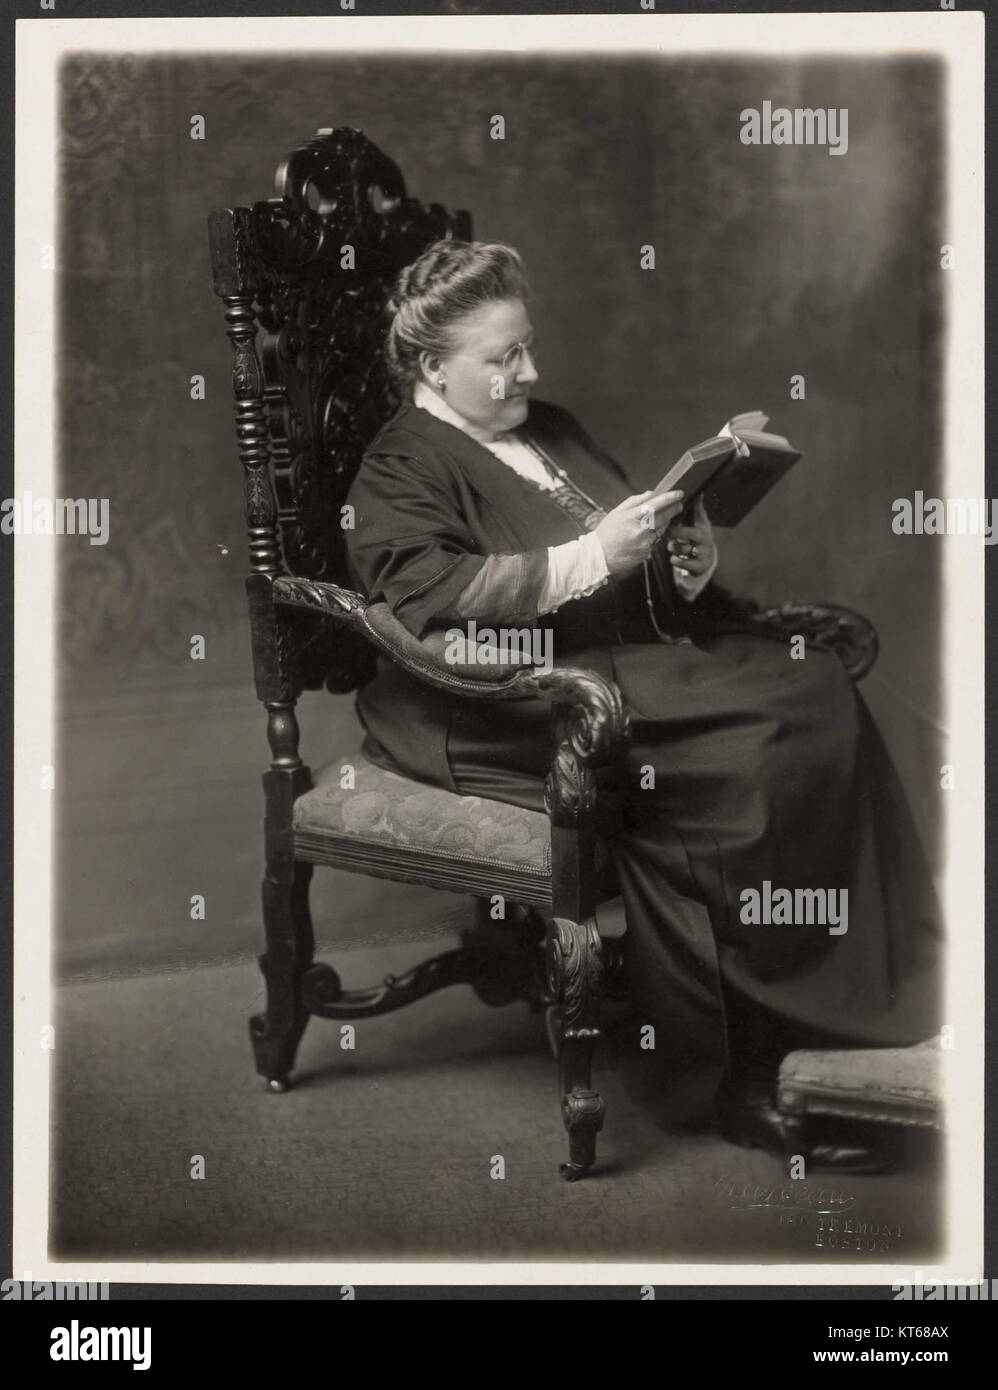 TIME Magazine cover from March 2, 1925 featuring Amy Lowell - Stock Image